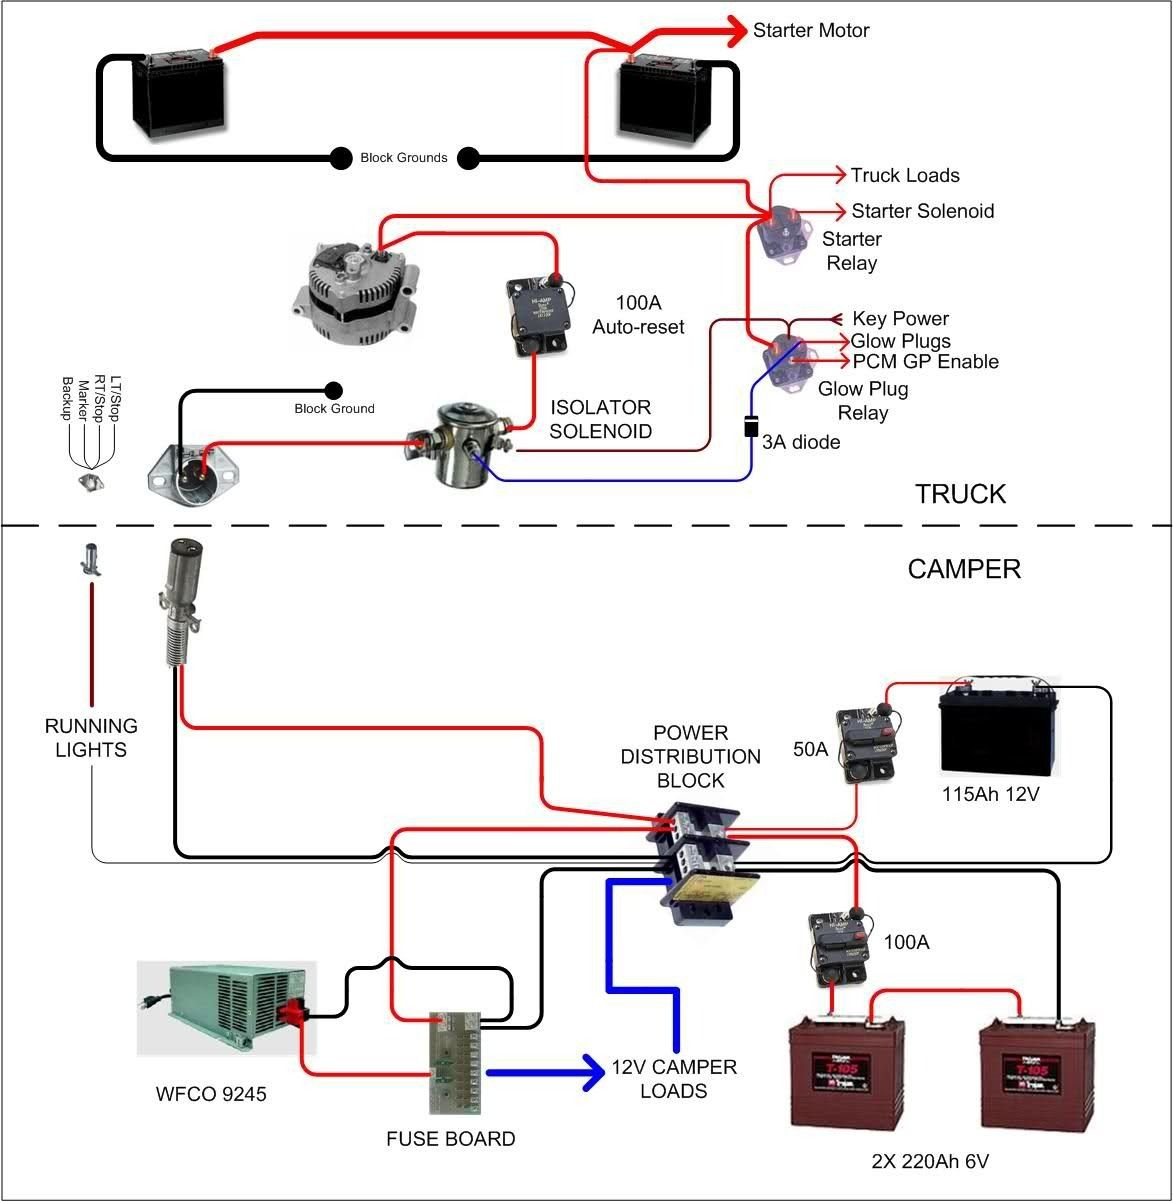 Travel Trailer Converter Wiring Diagram | Wiringdiagram - Wiring Camper Trailer Diagram